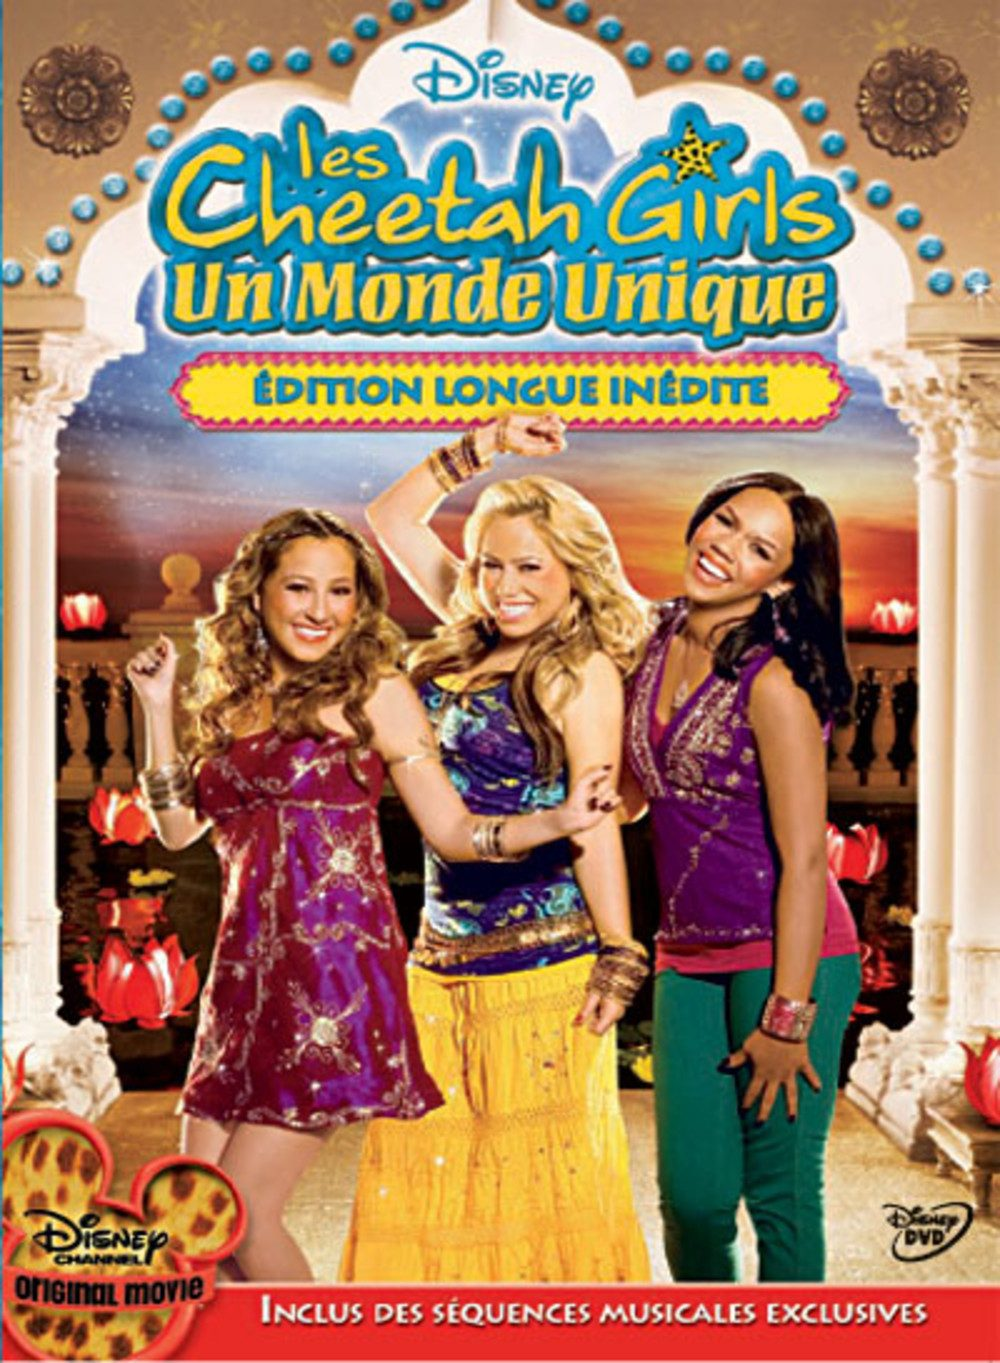 Affiche Poster cheetah girls monde unique one world disney channel